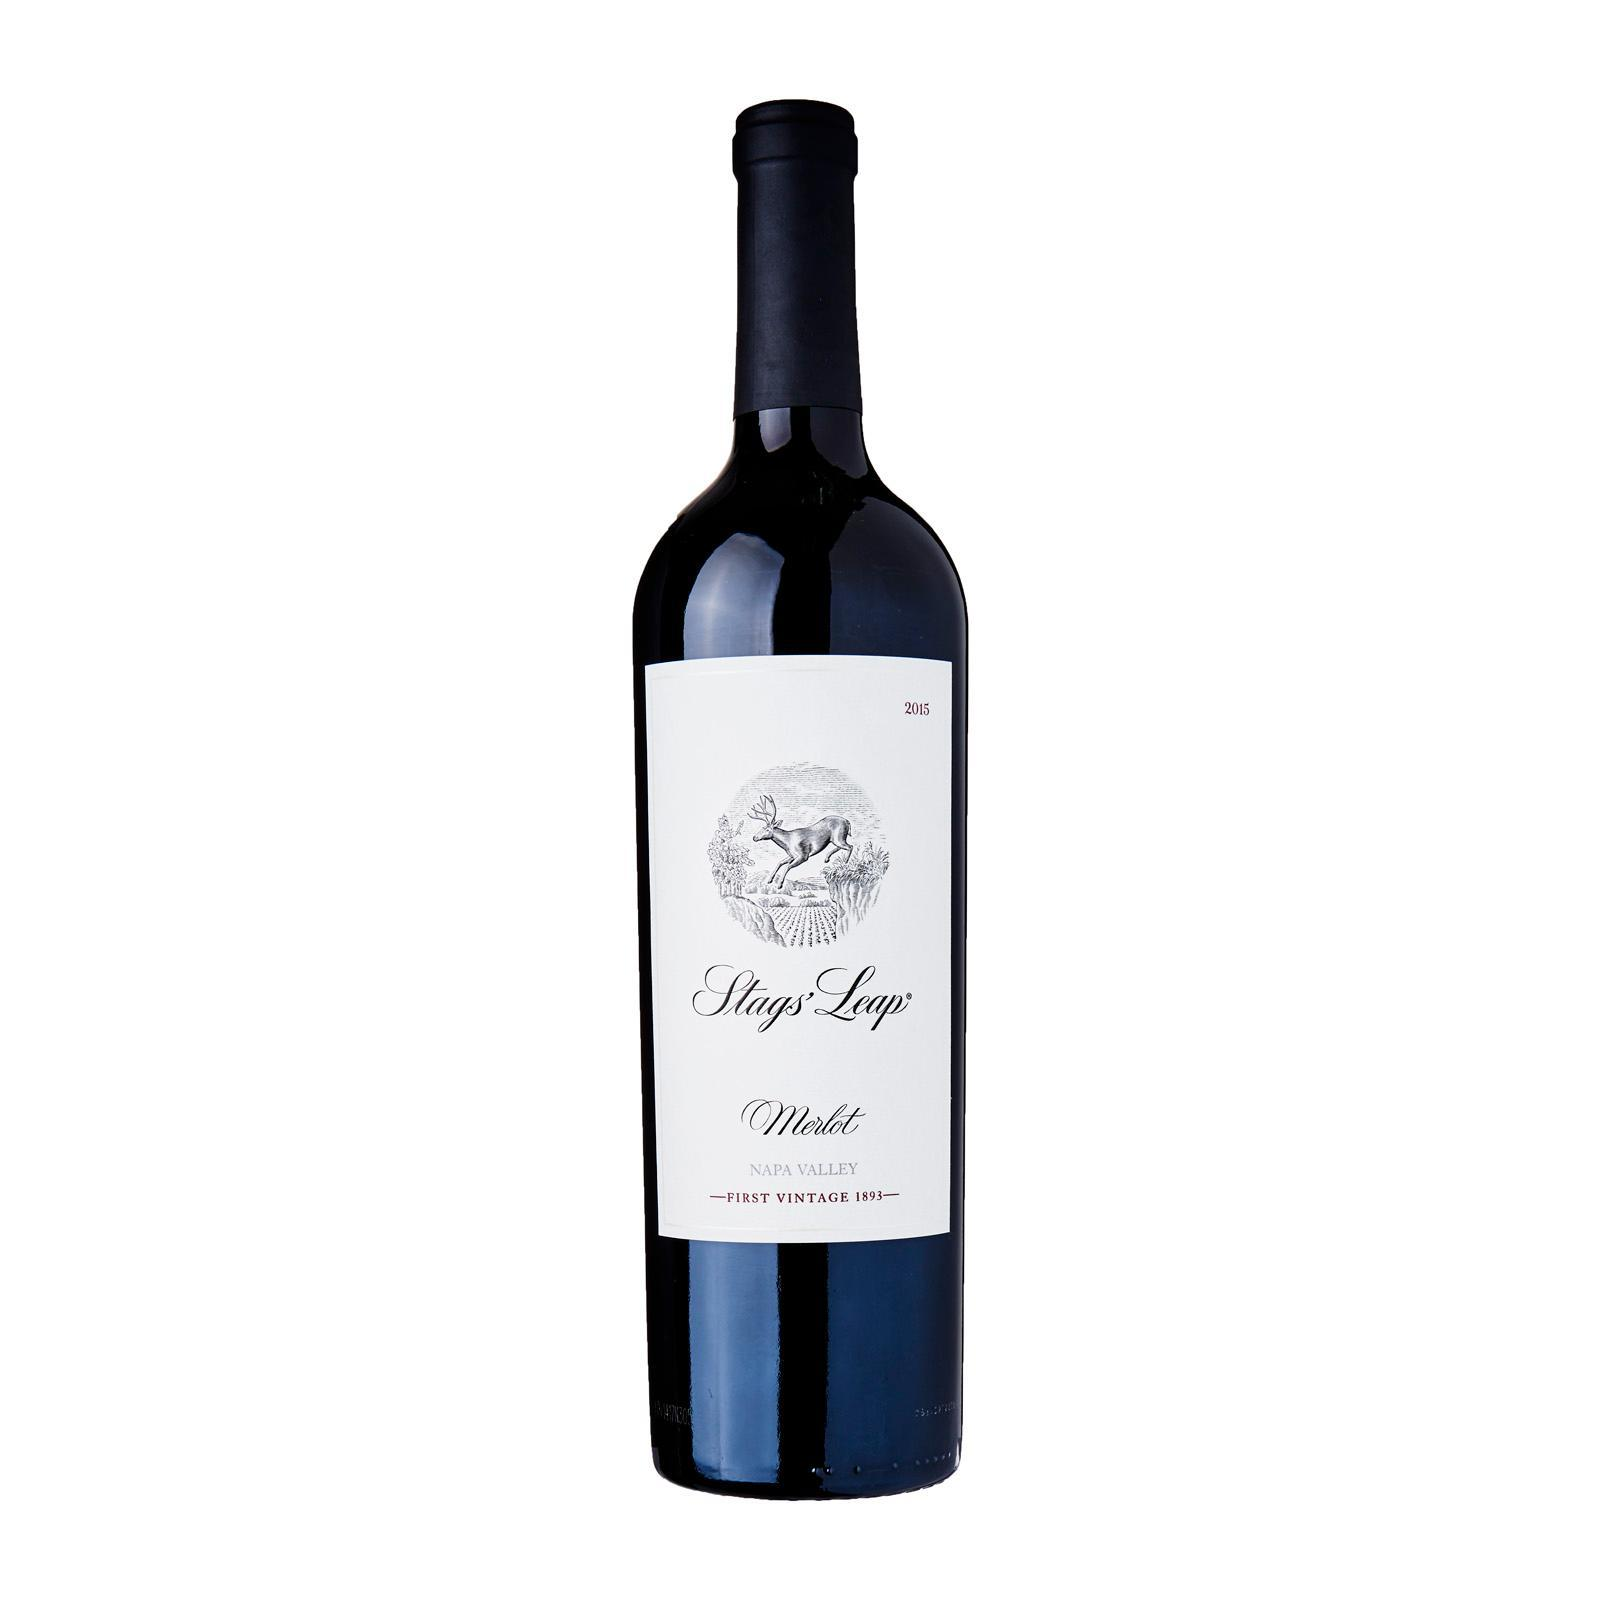 Stags Leap Napa Valley Merlot - By Wine Collection